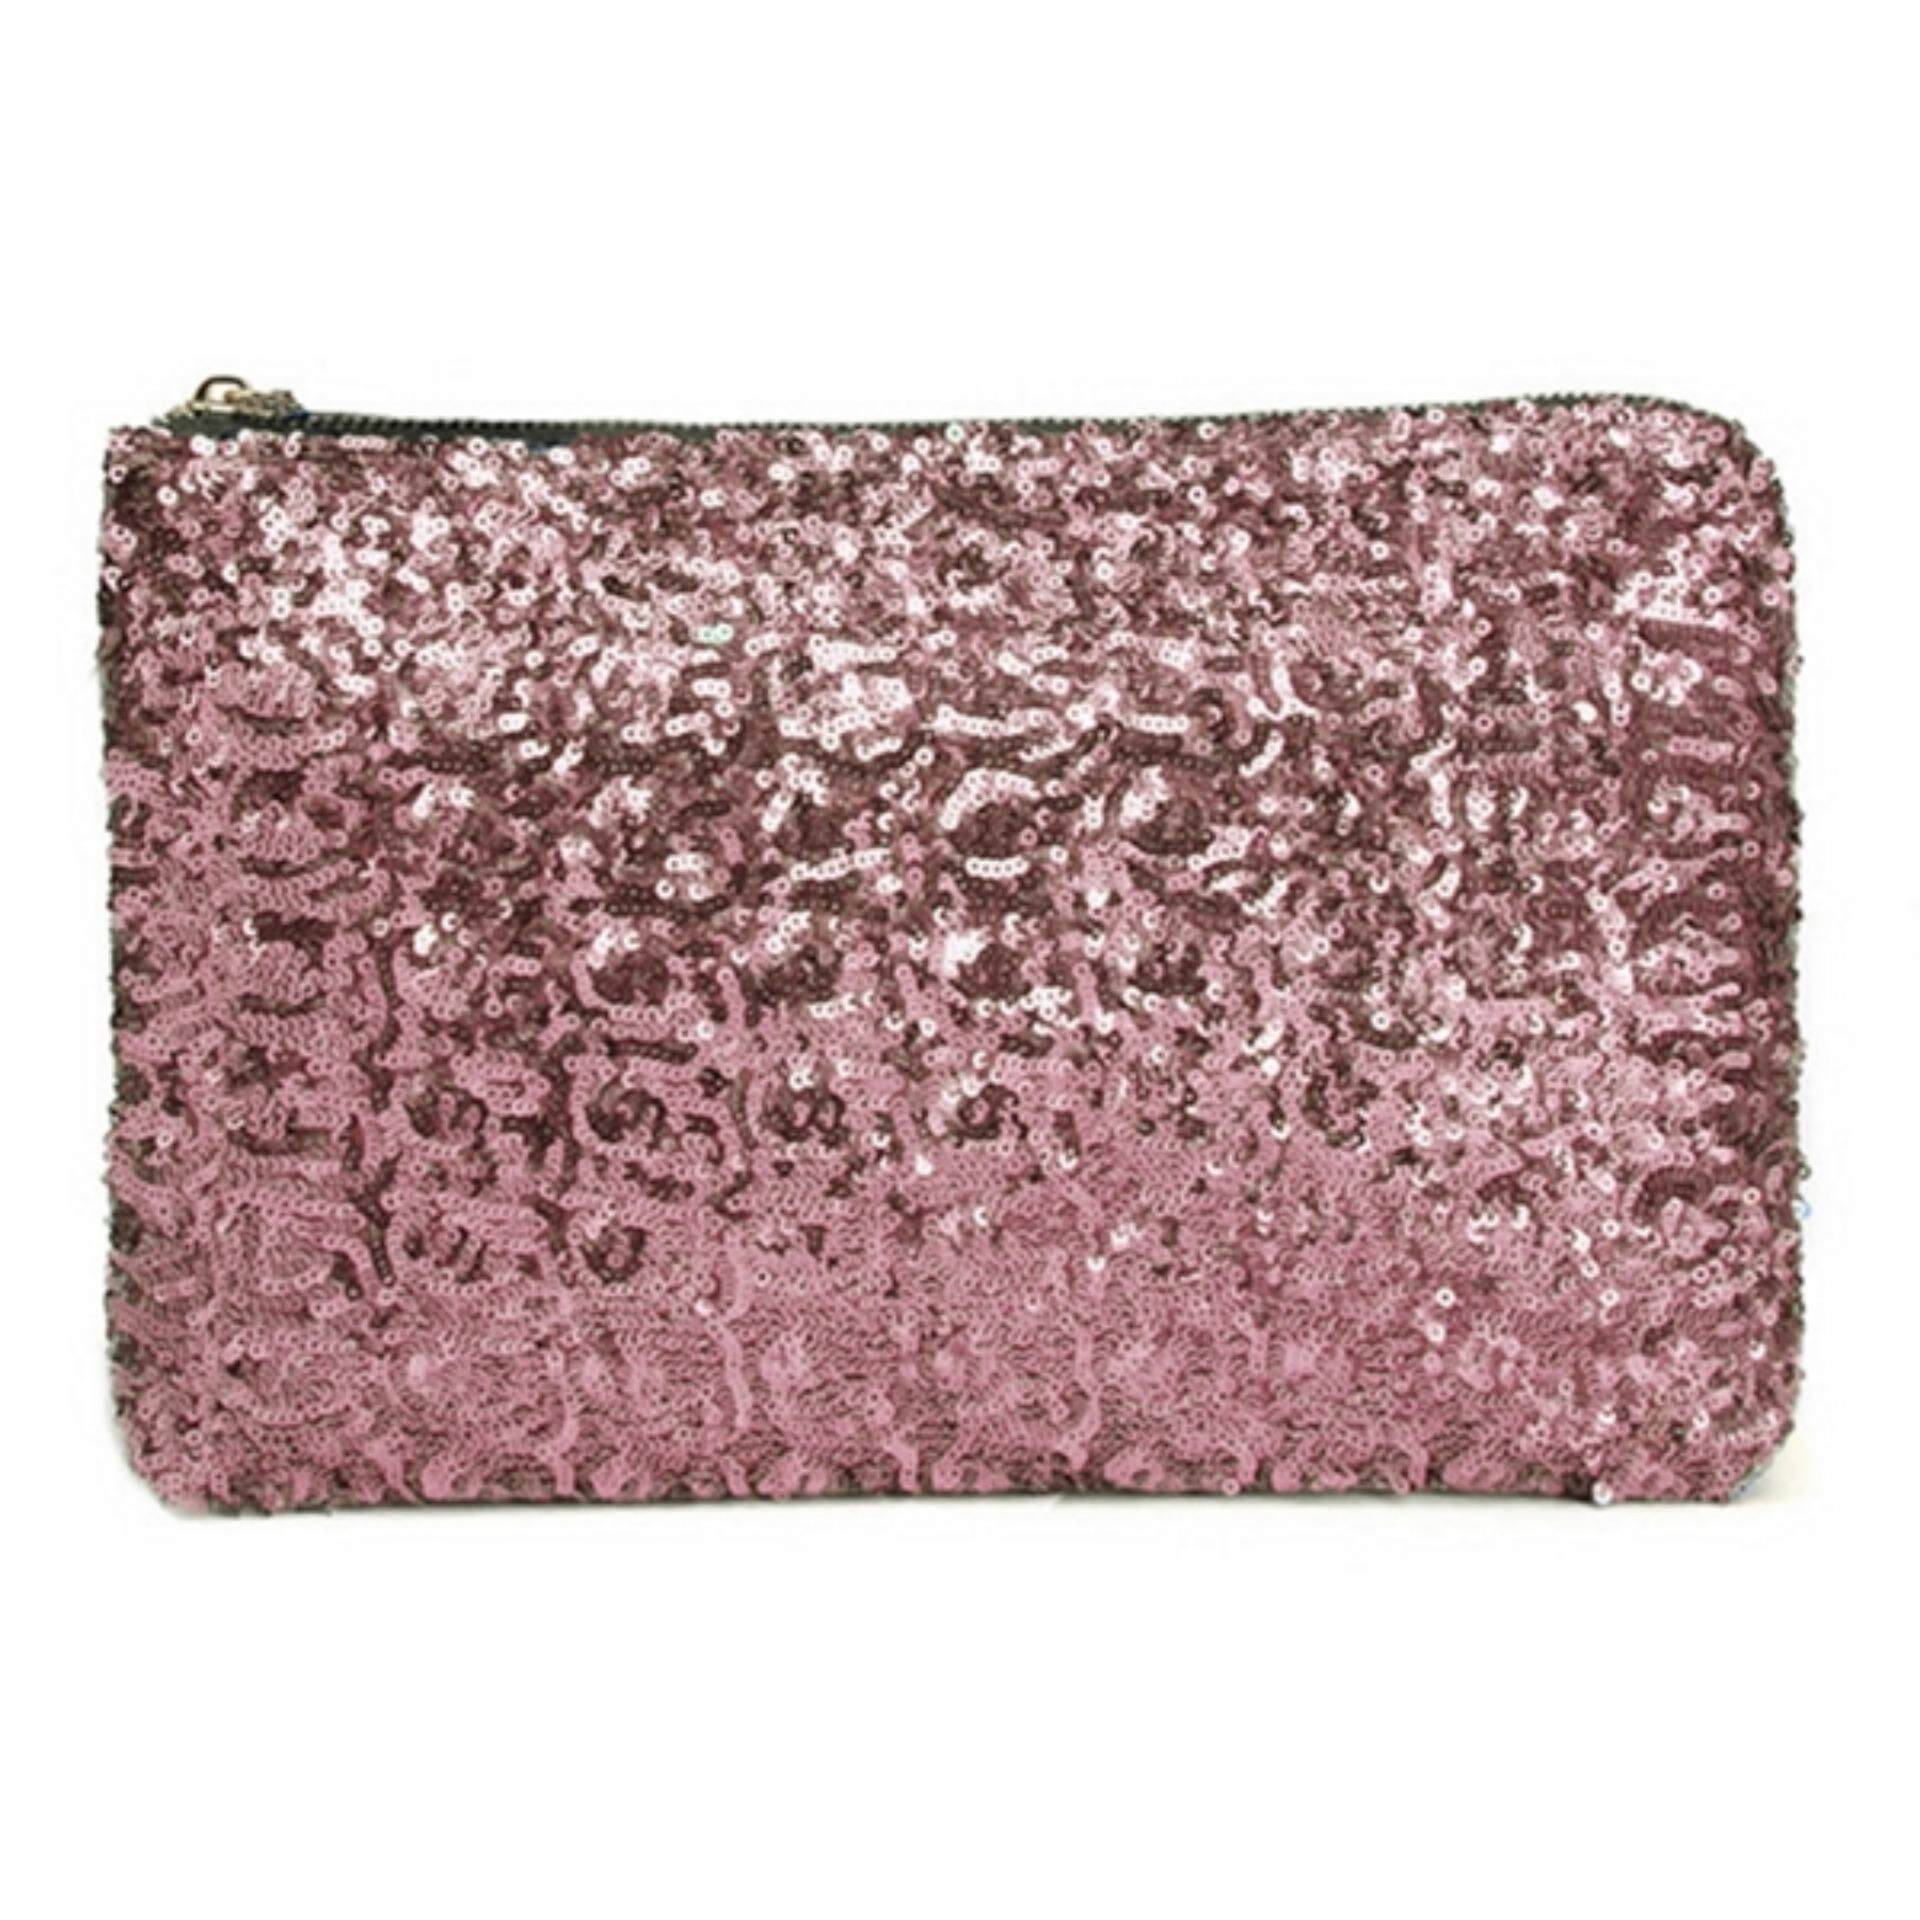 f8203afe9118 TEEMI Sequins Metallic Glitter Clutch Evening Dinner Purse Women HandBag  Dazzling Sparkling Party Bag - Pink